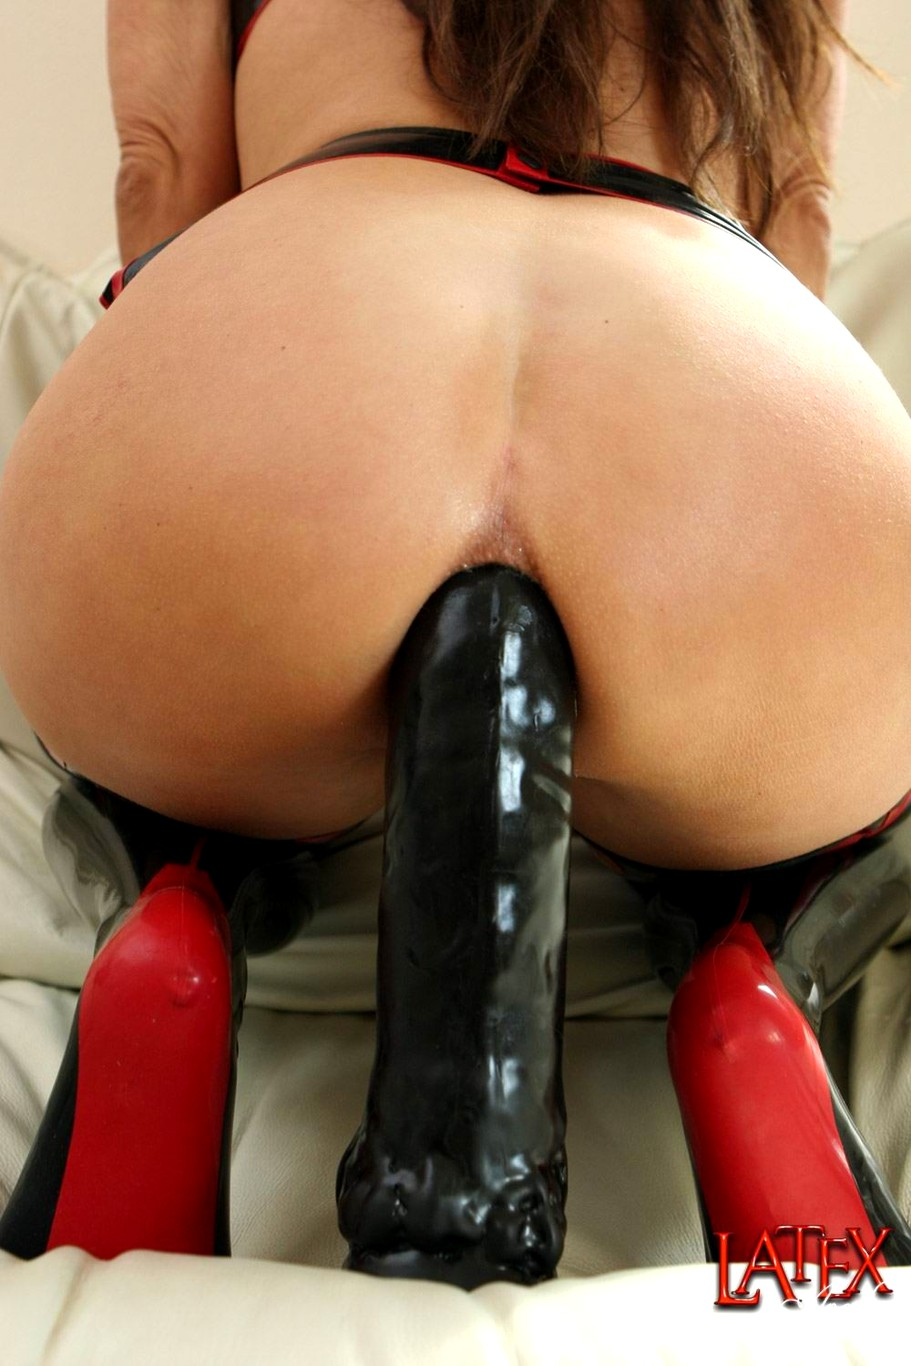 free-huge-dildo-penetration-wwe-vickie-guerrerp-topless